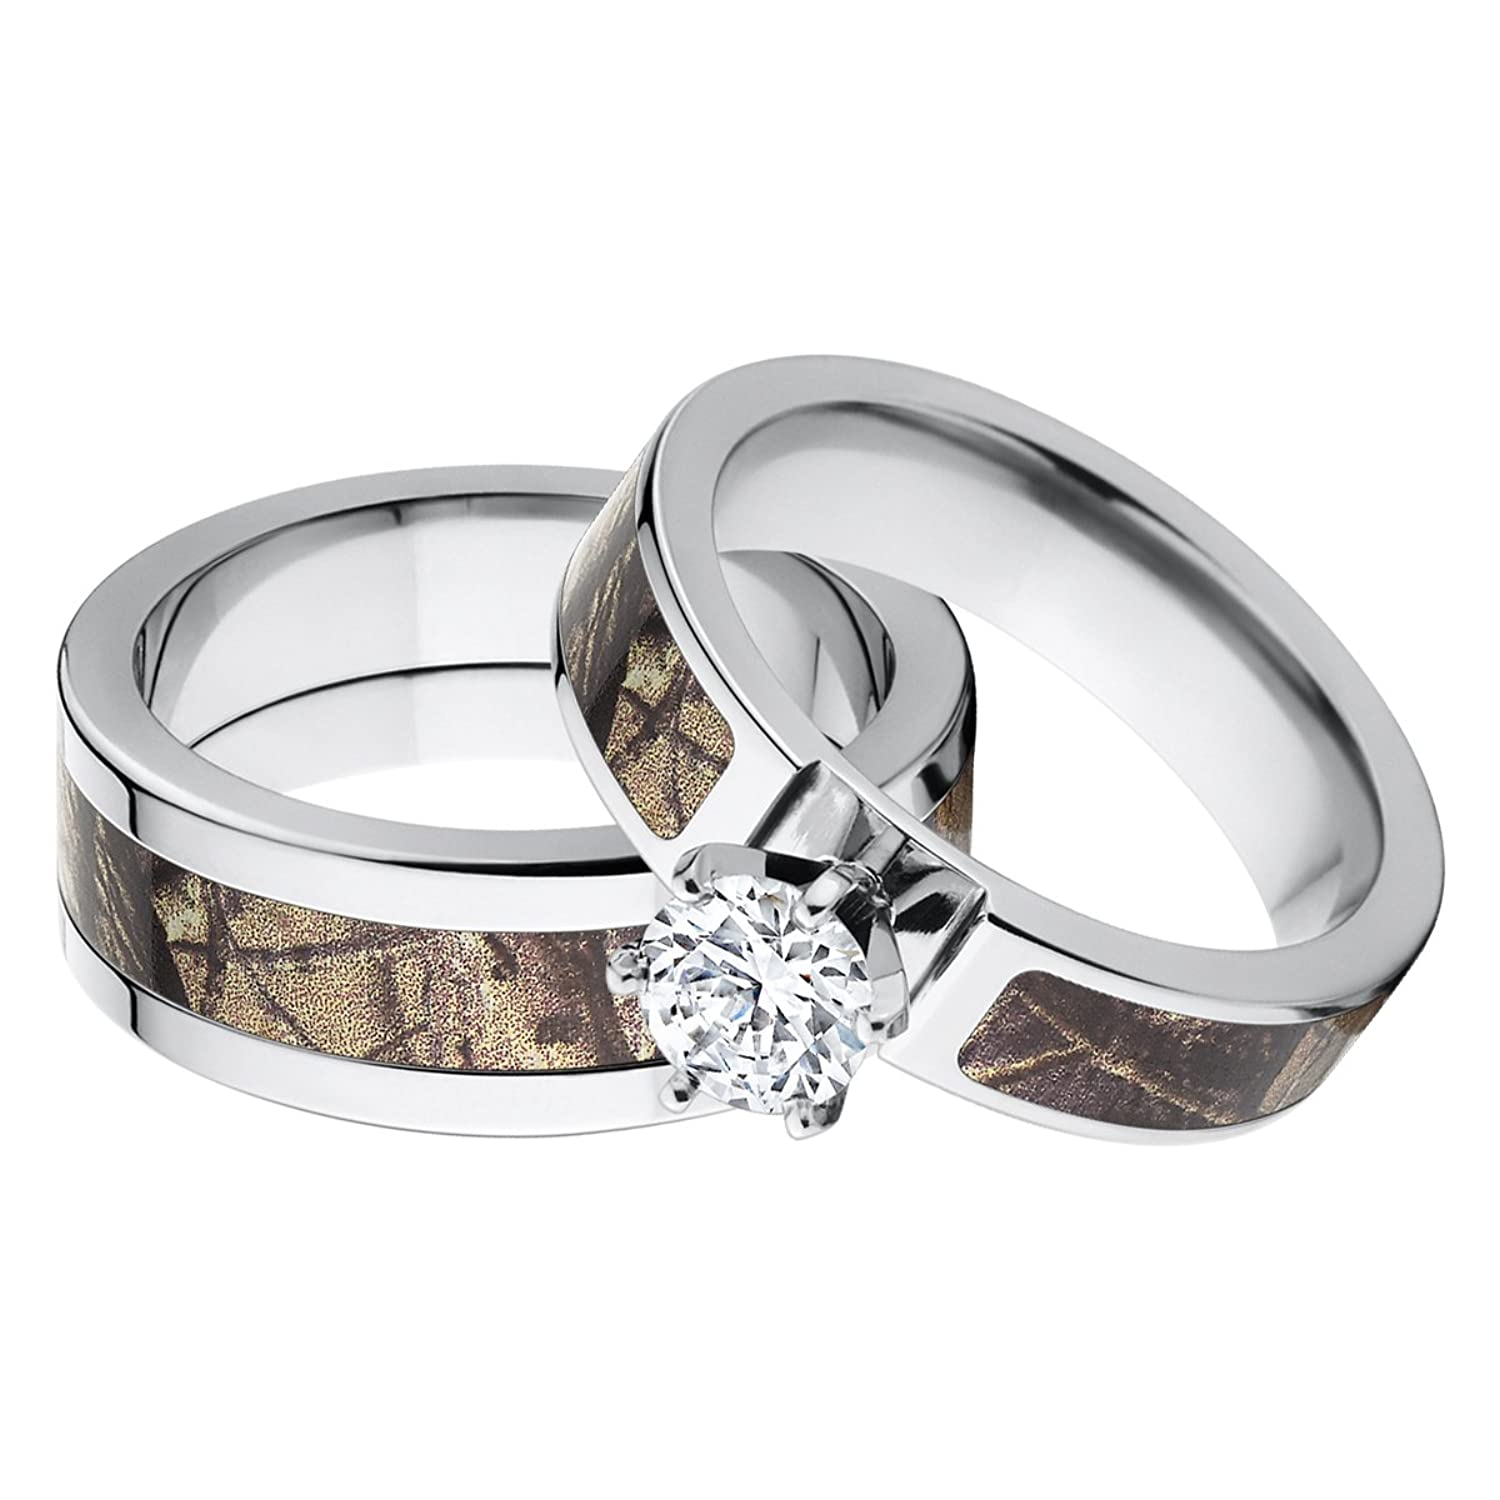 amazoncom his and hers matching realtree ap camouflage wedding ring set jewelry - Pink Camo Wedding Ring Sets